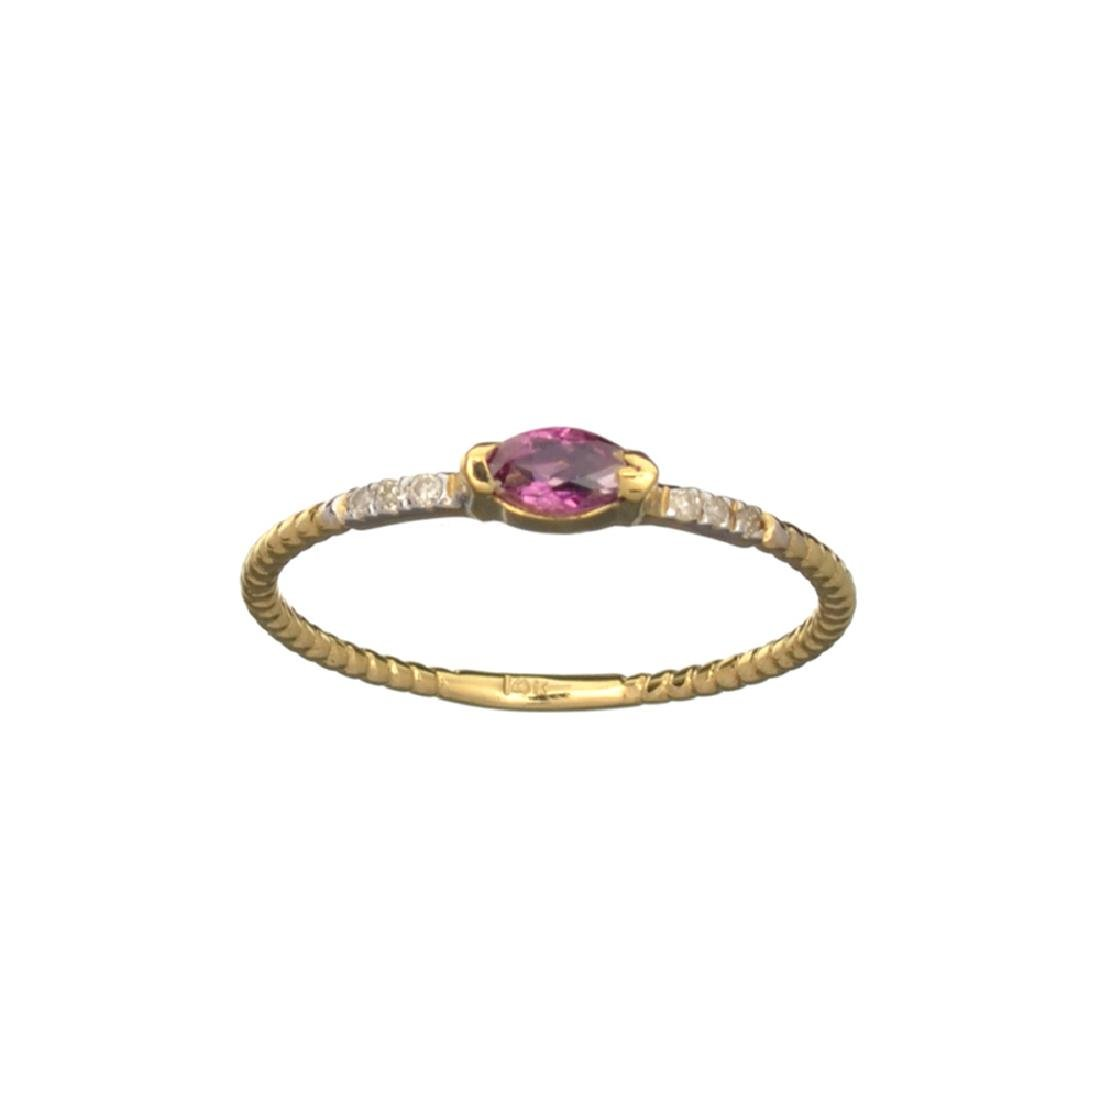 APP: 0.4k Fine Jewelry 14 KT Gold, 0.20CT Red Ruby And